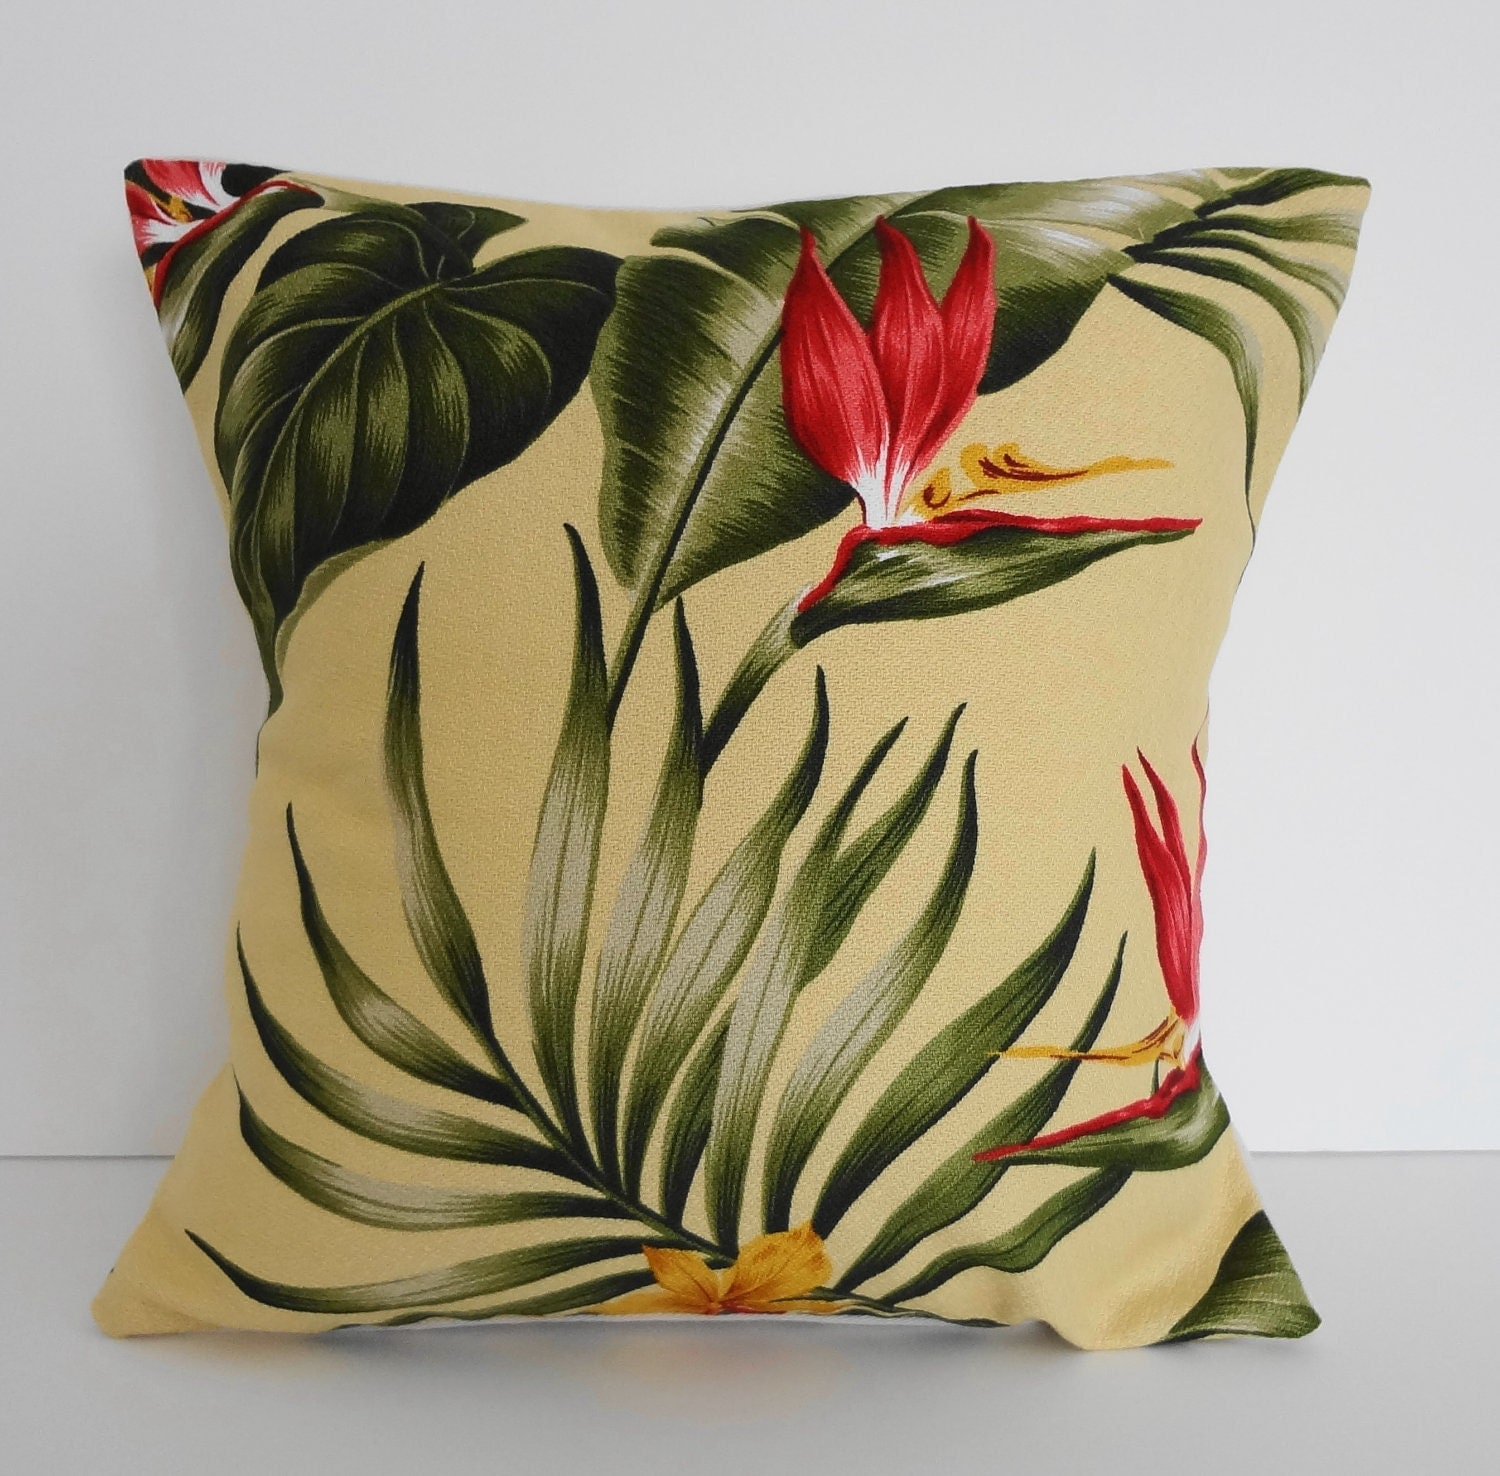 Tropical Throw Pillows For Couch : Tropical Throw Pillow Cover Hawaiian Print 12x12 Yellow